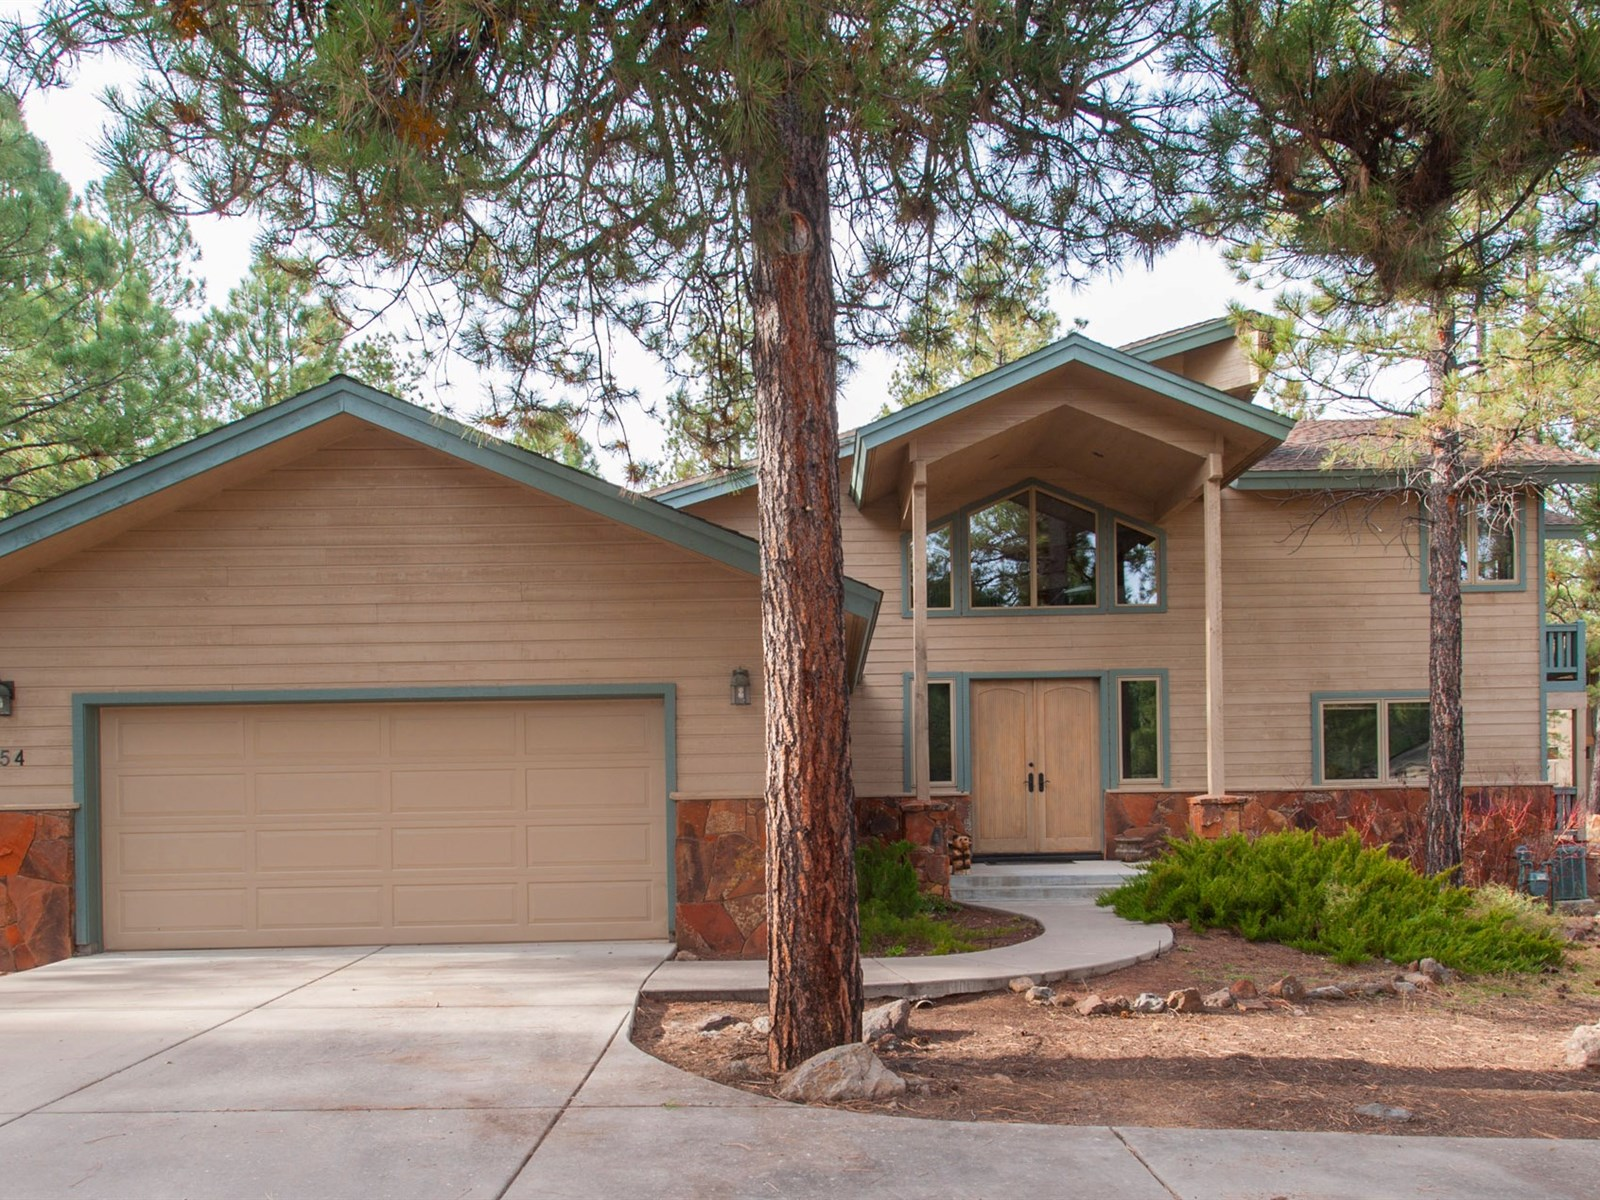 Moradia para Venda às Beautiful Multi-Level Home 2562 Hart Merriam Flagstaff, Arizona 86005 Estados Unidos